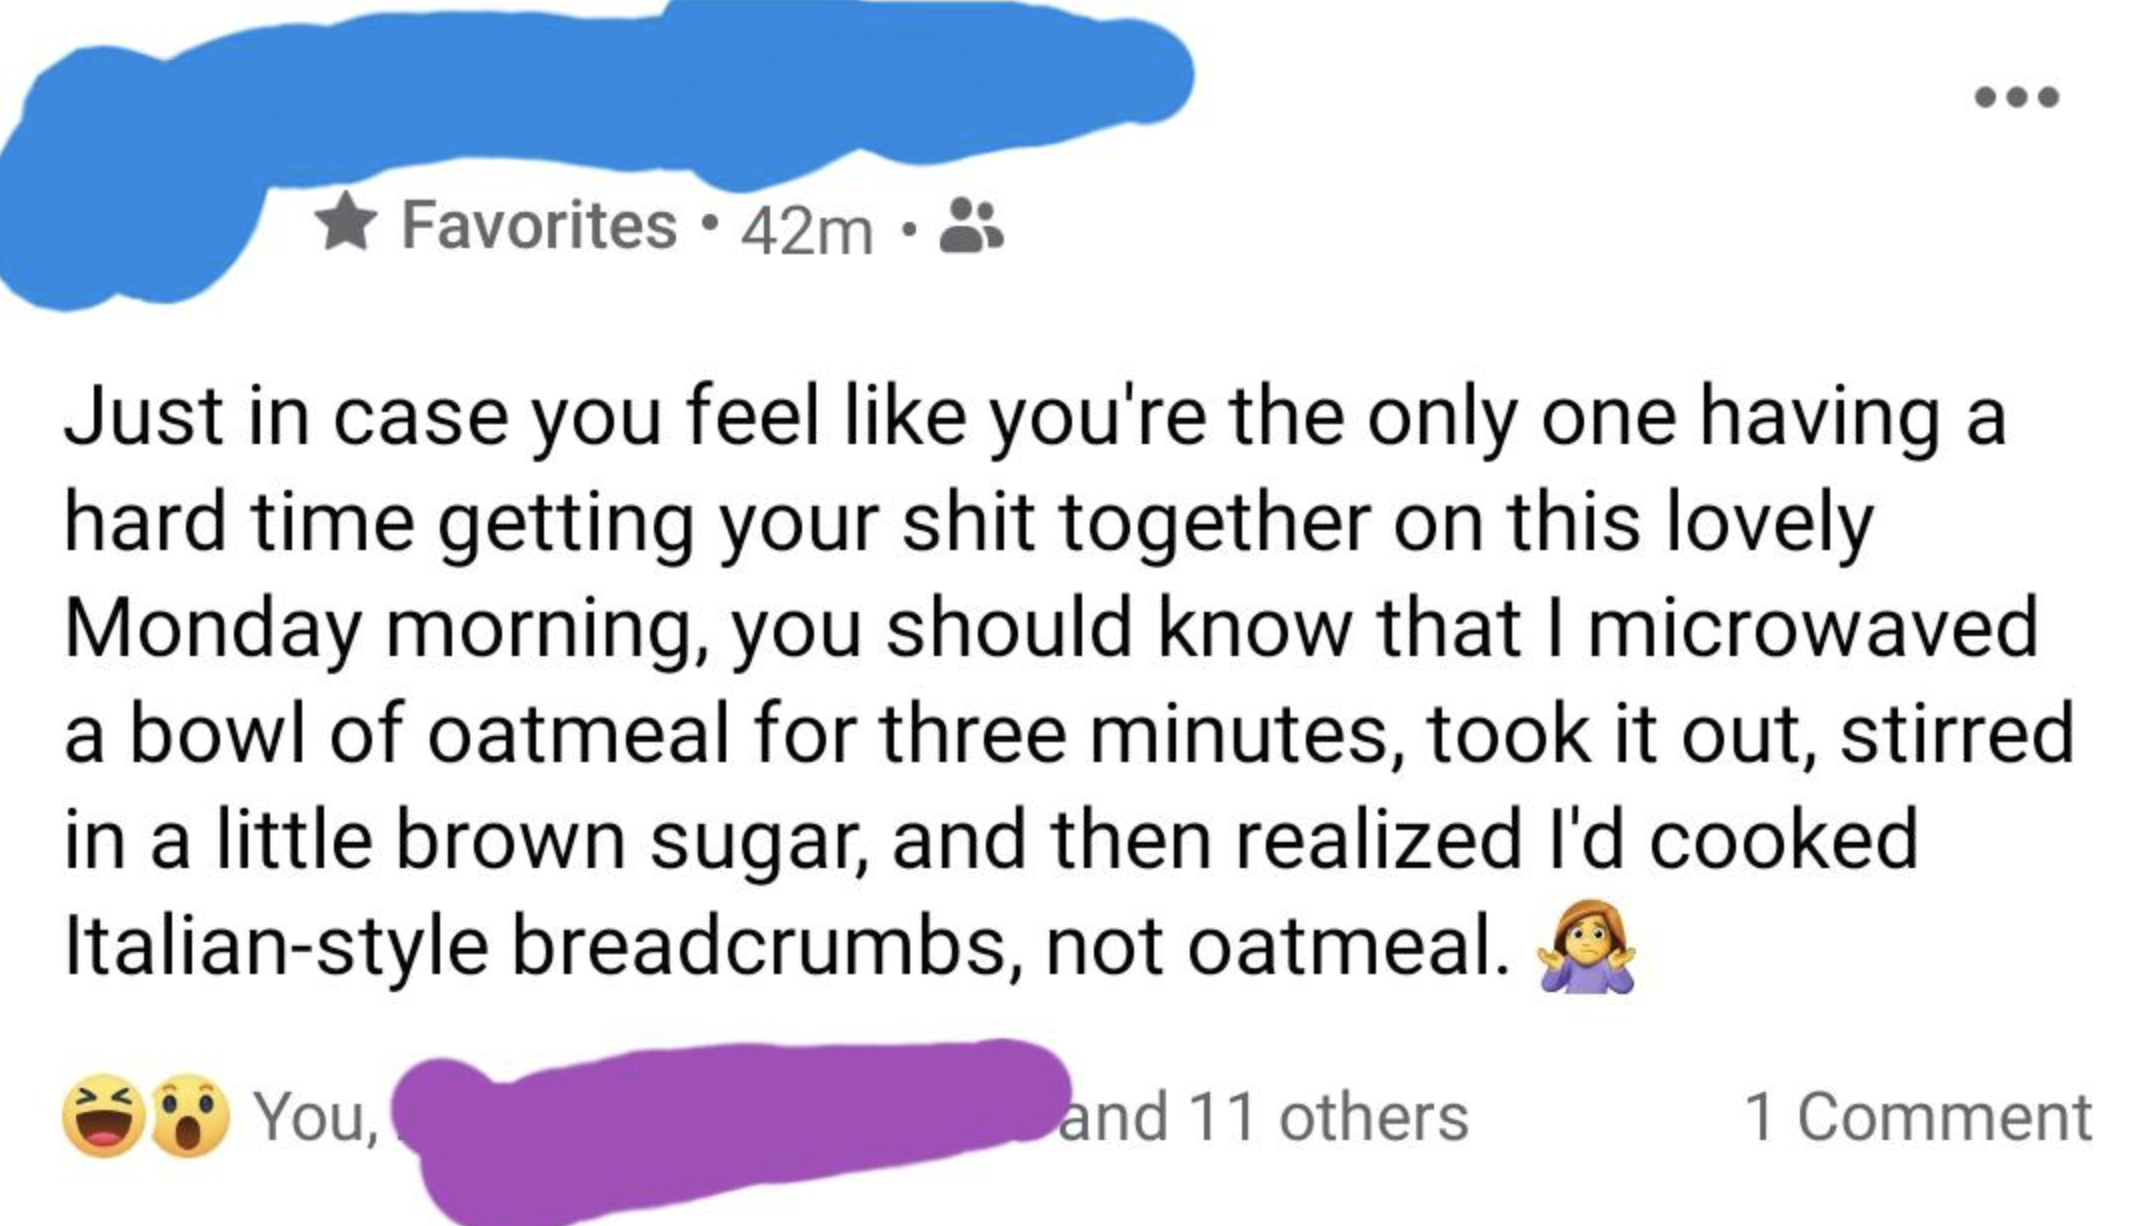 person who cooked breadcrumbs instead of oatmeal